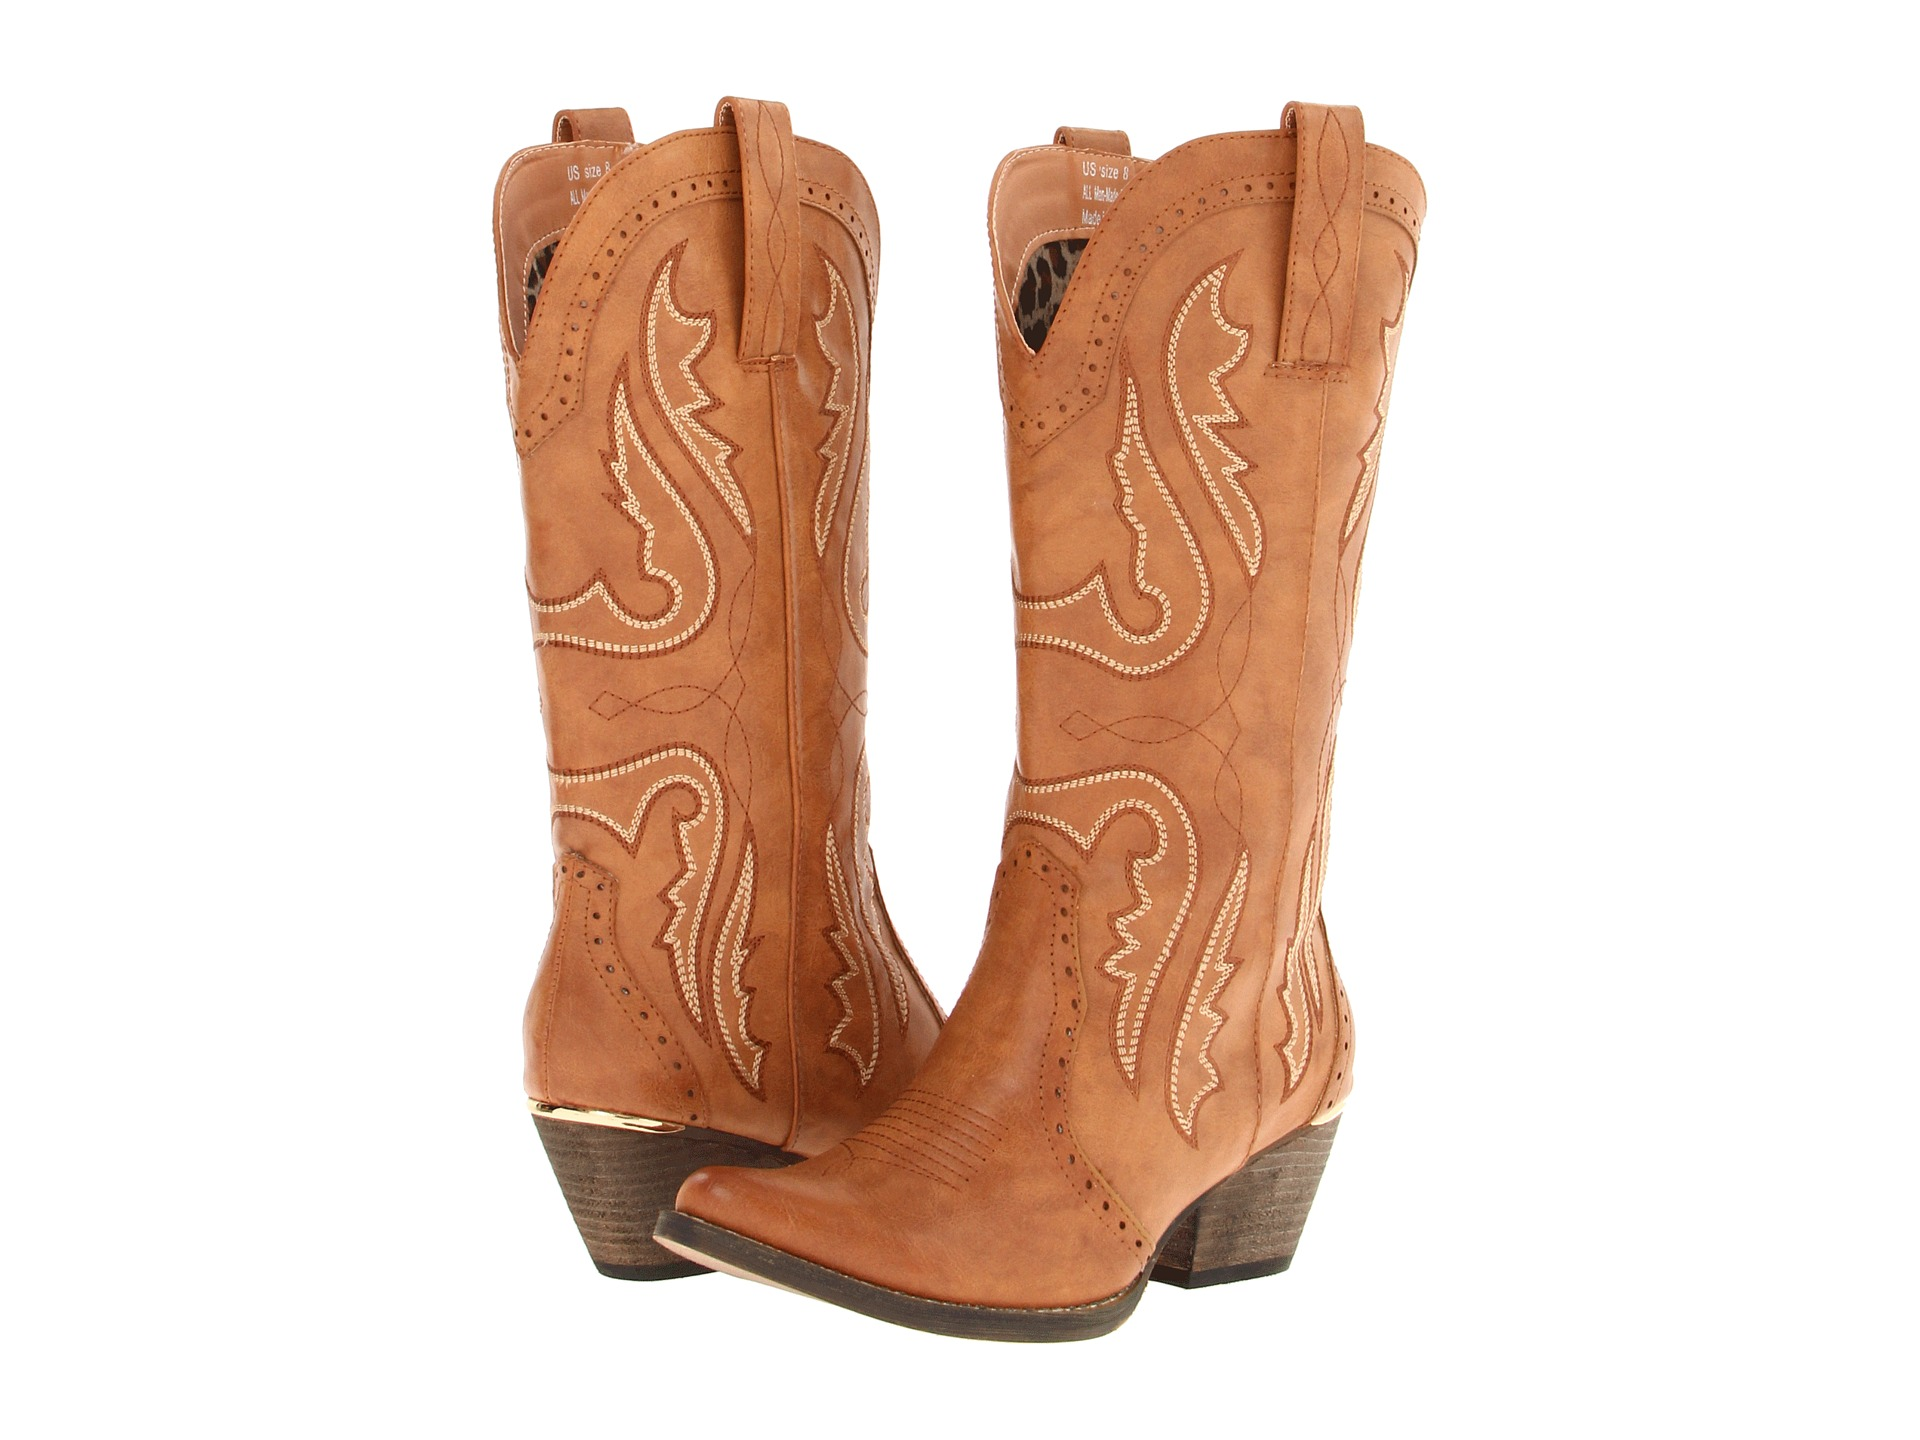 Boots, Cowboy Boots, Tan, Women | Shipped Free at Zappos